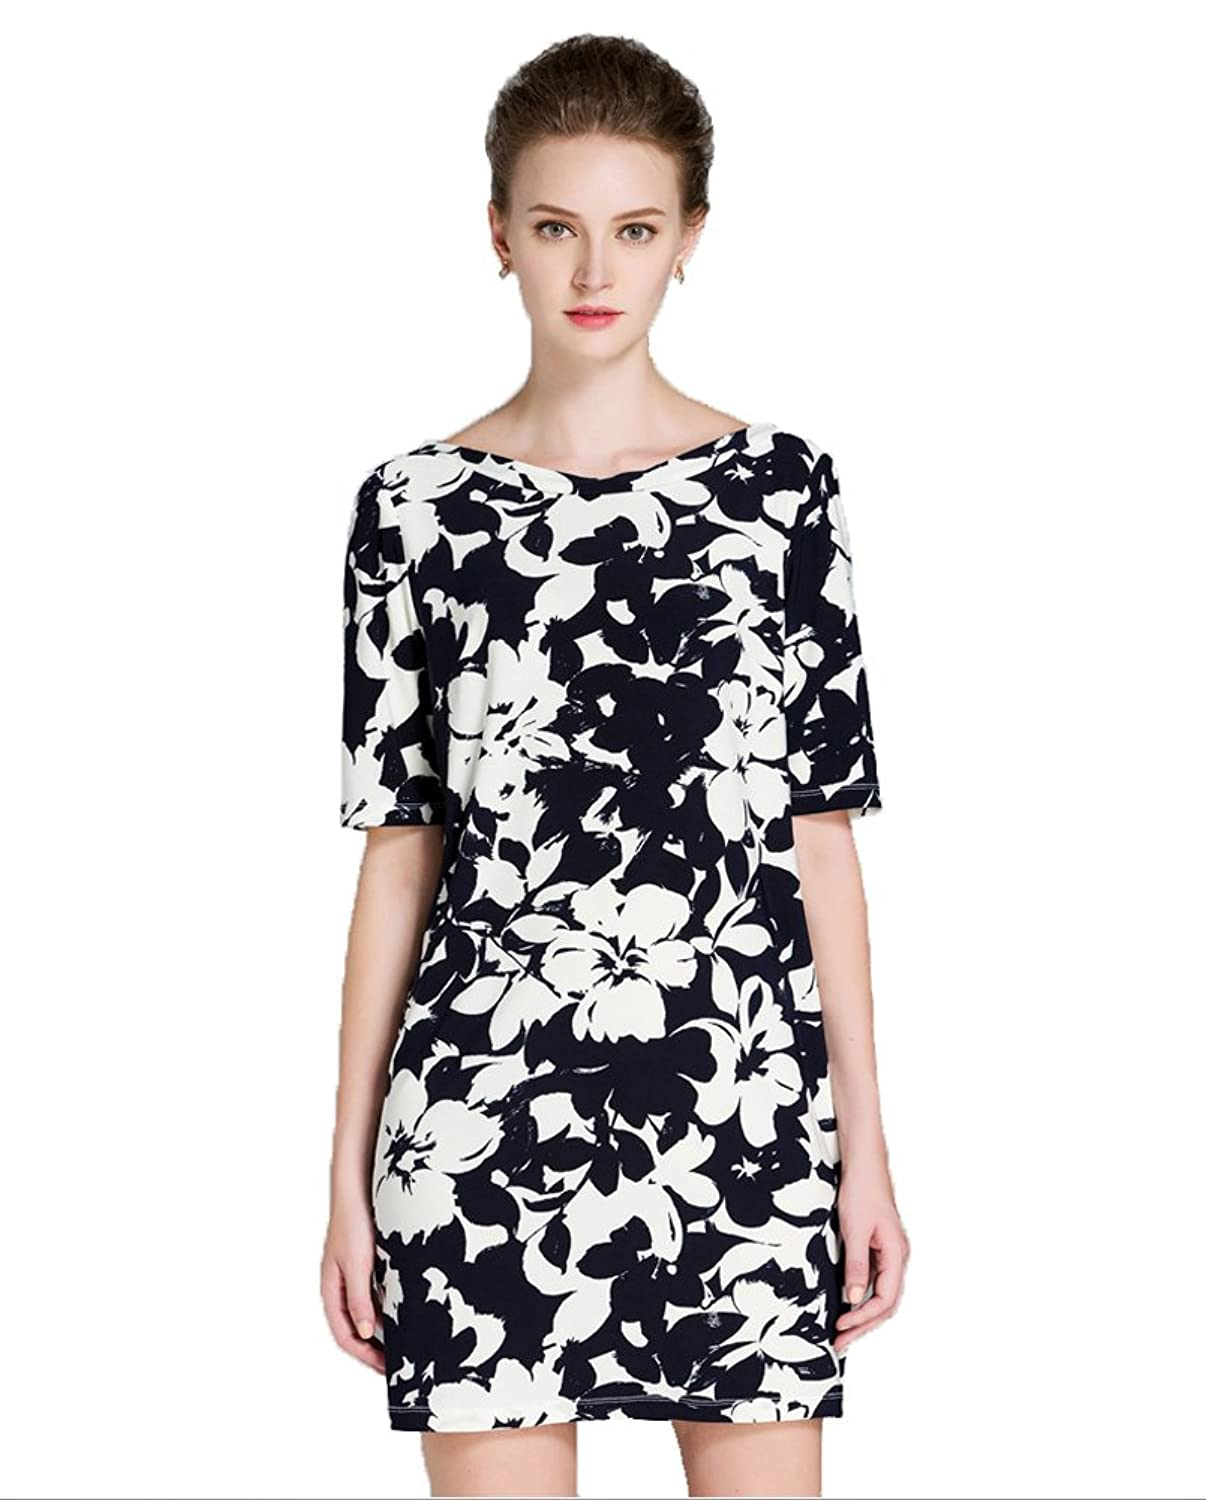 Sarah Dean Woman's Half Sleeve Knitted Printed Dress